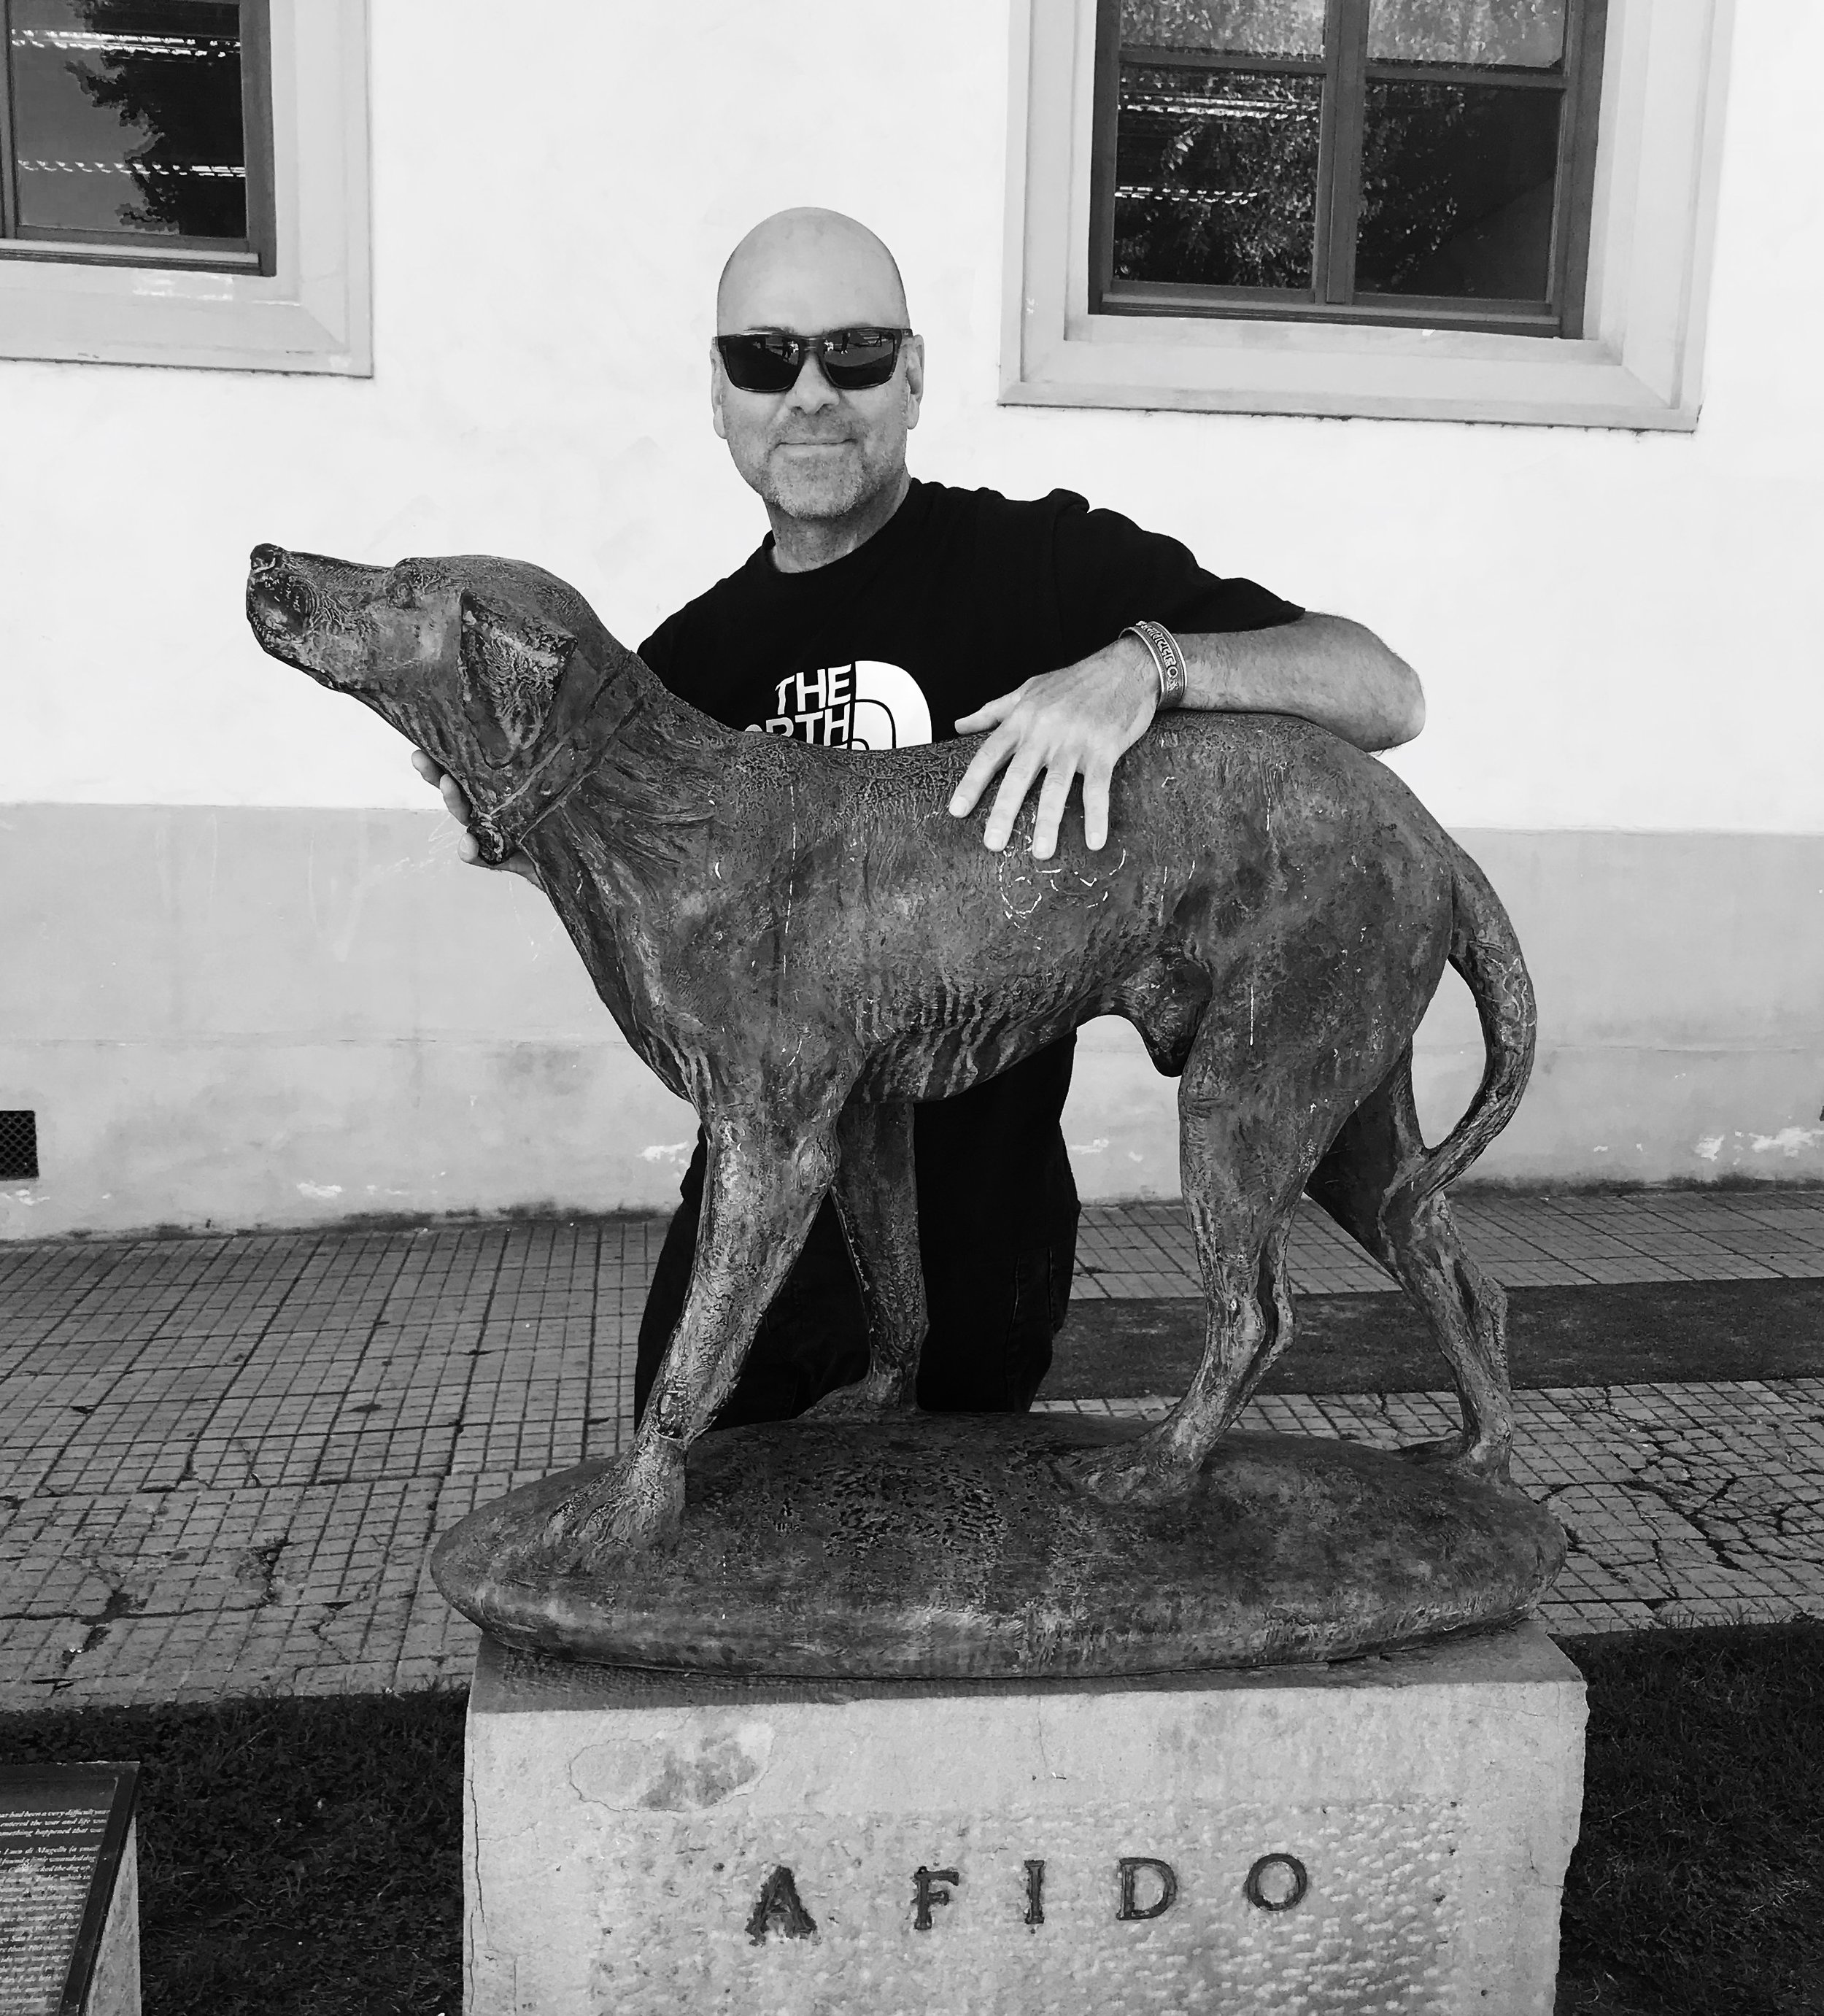 Paul, at the Fido Memorial in Borgo San Lorenzo, Tuscana, Italia